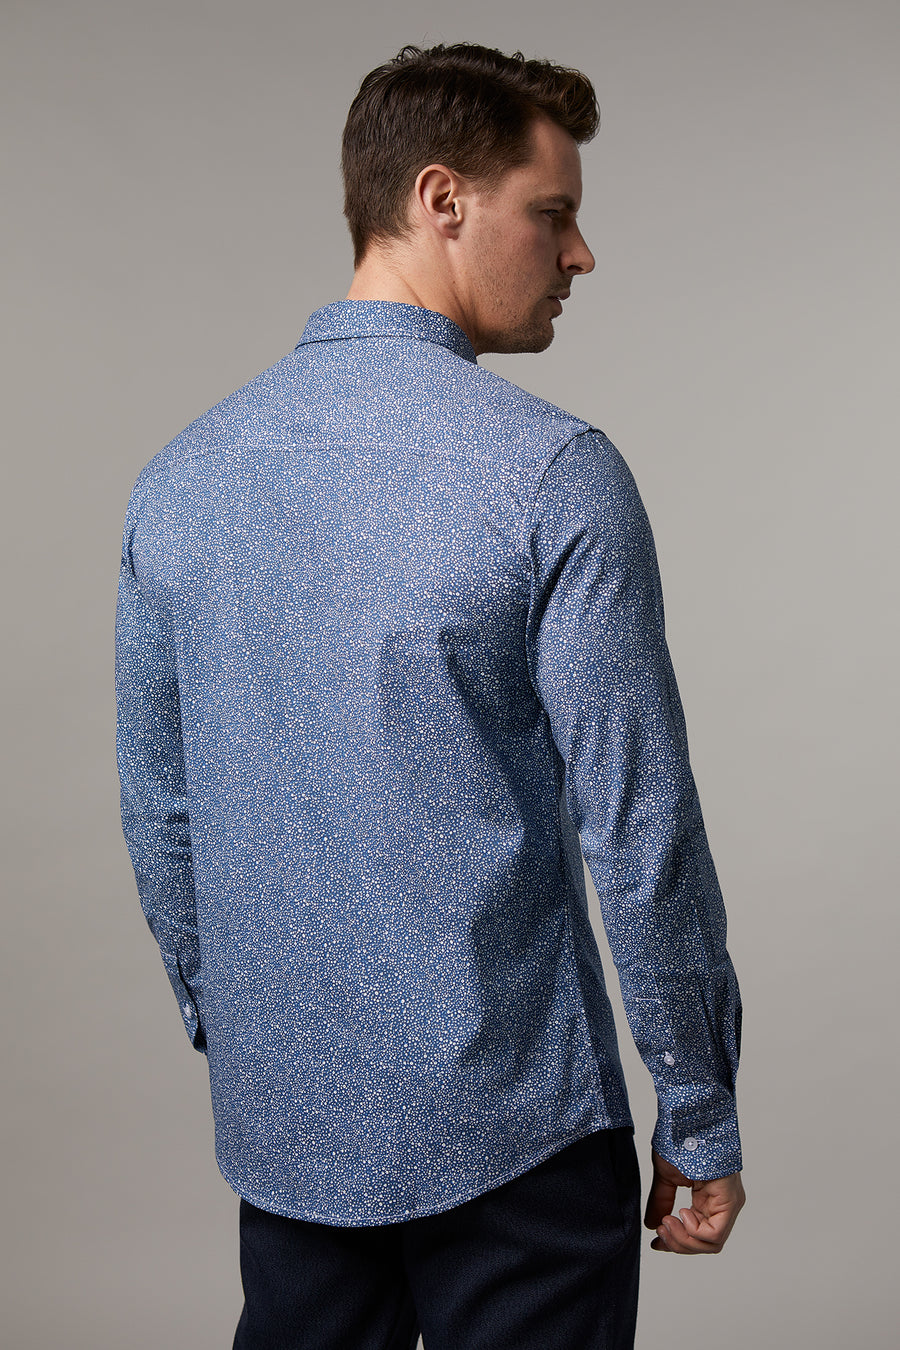 Ryan Abstract Navy Shirt